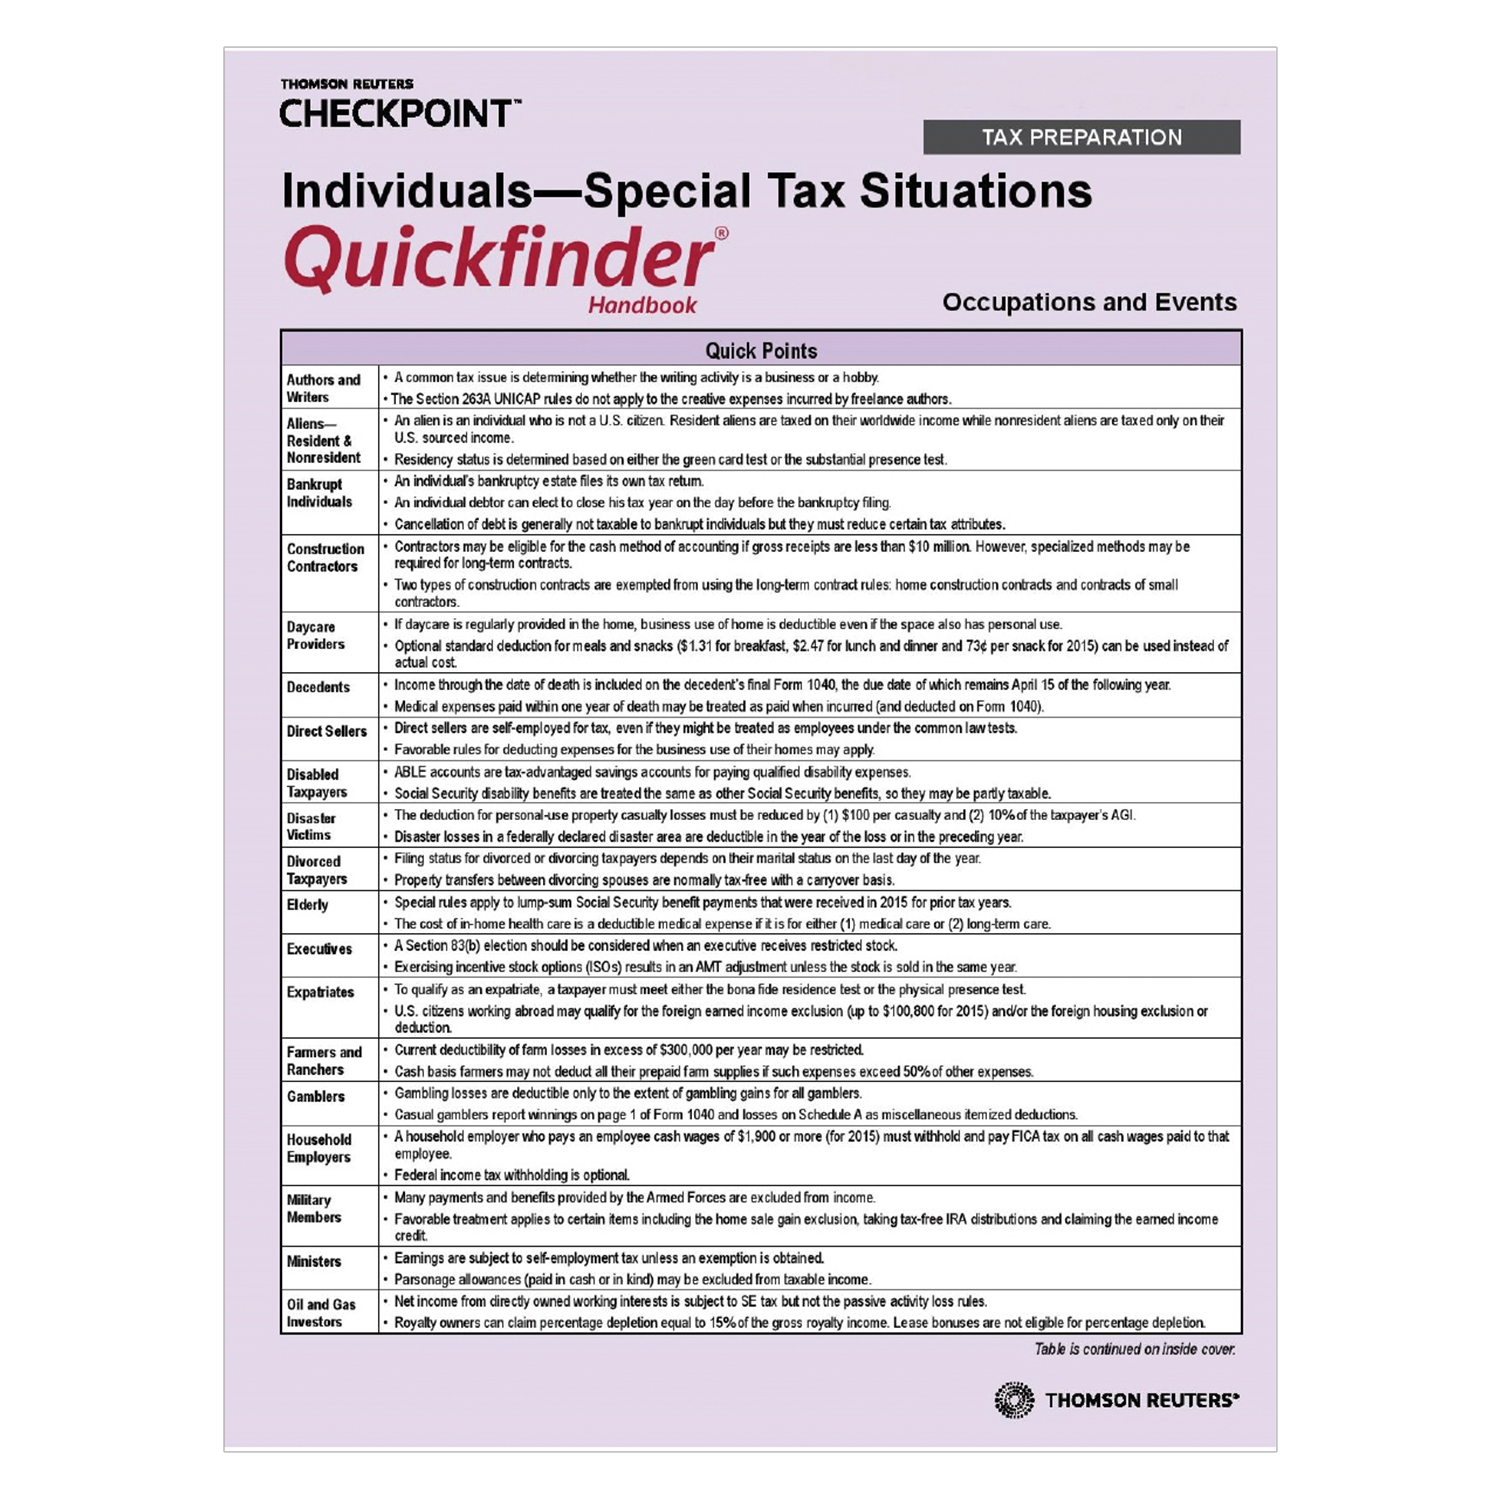 Individuals – Special Tax Situations Quickfinder Handbook (2019) - #3940